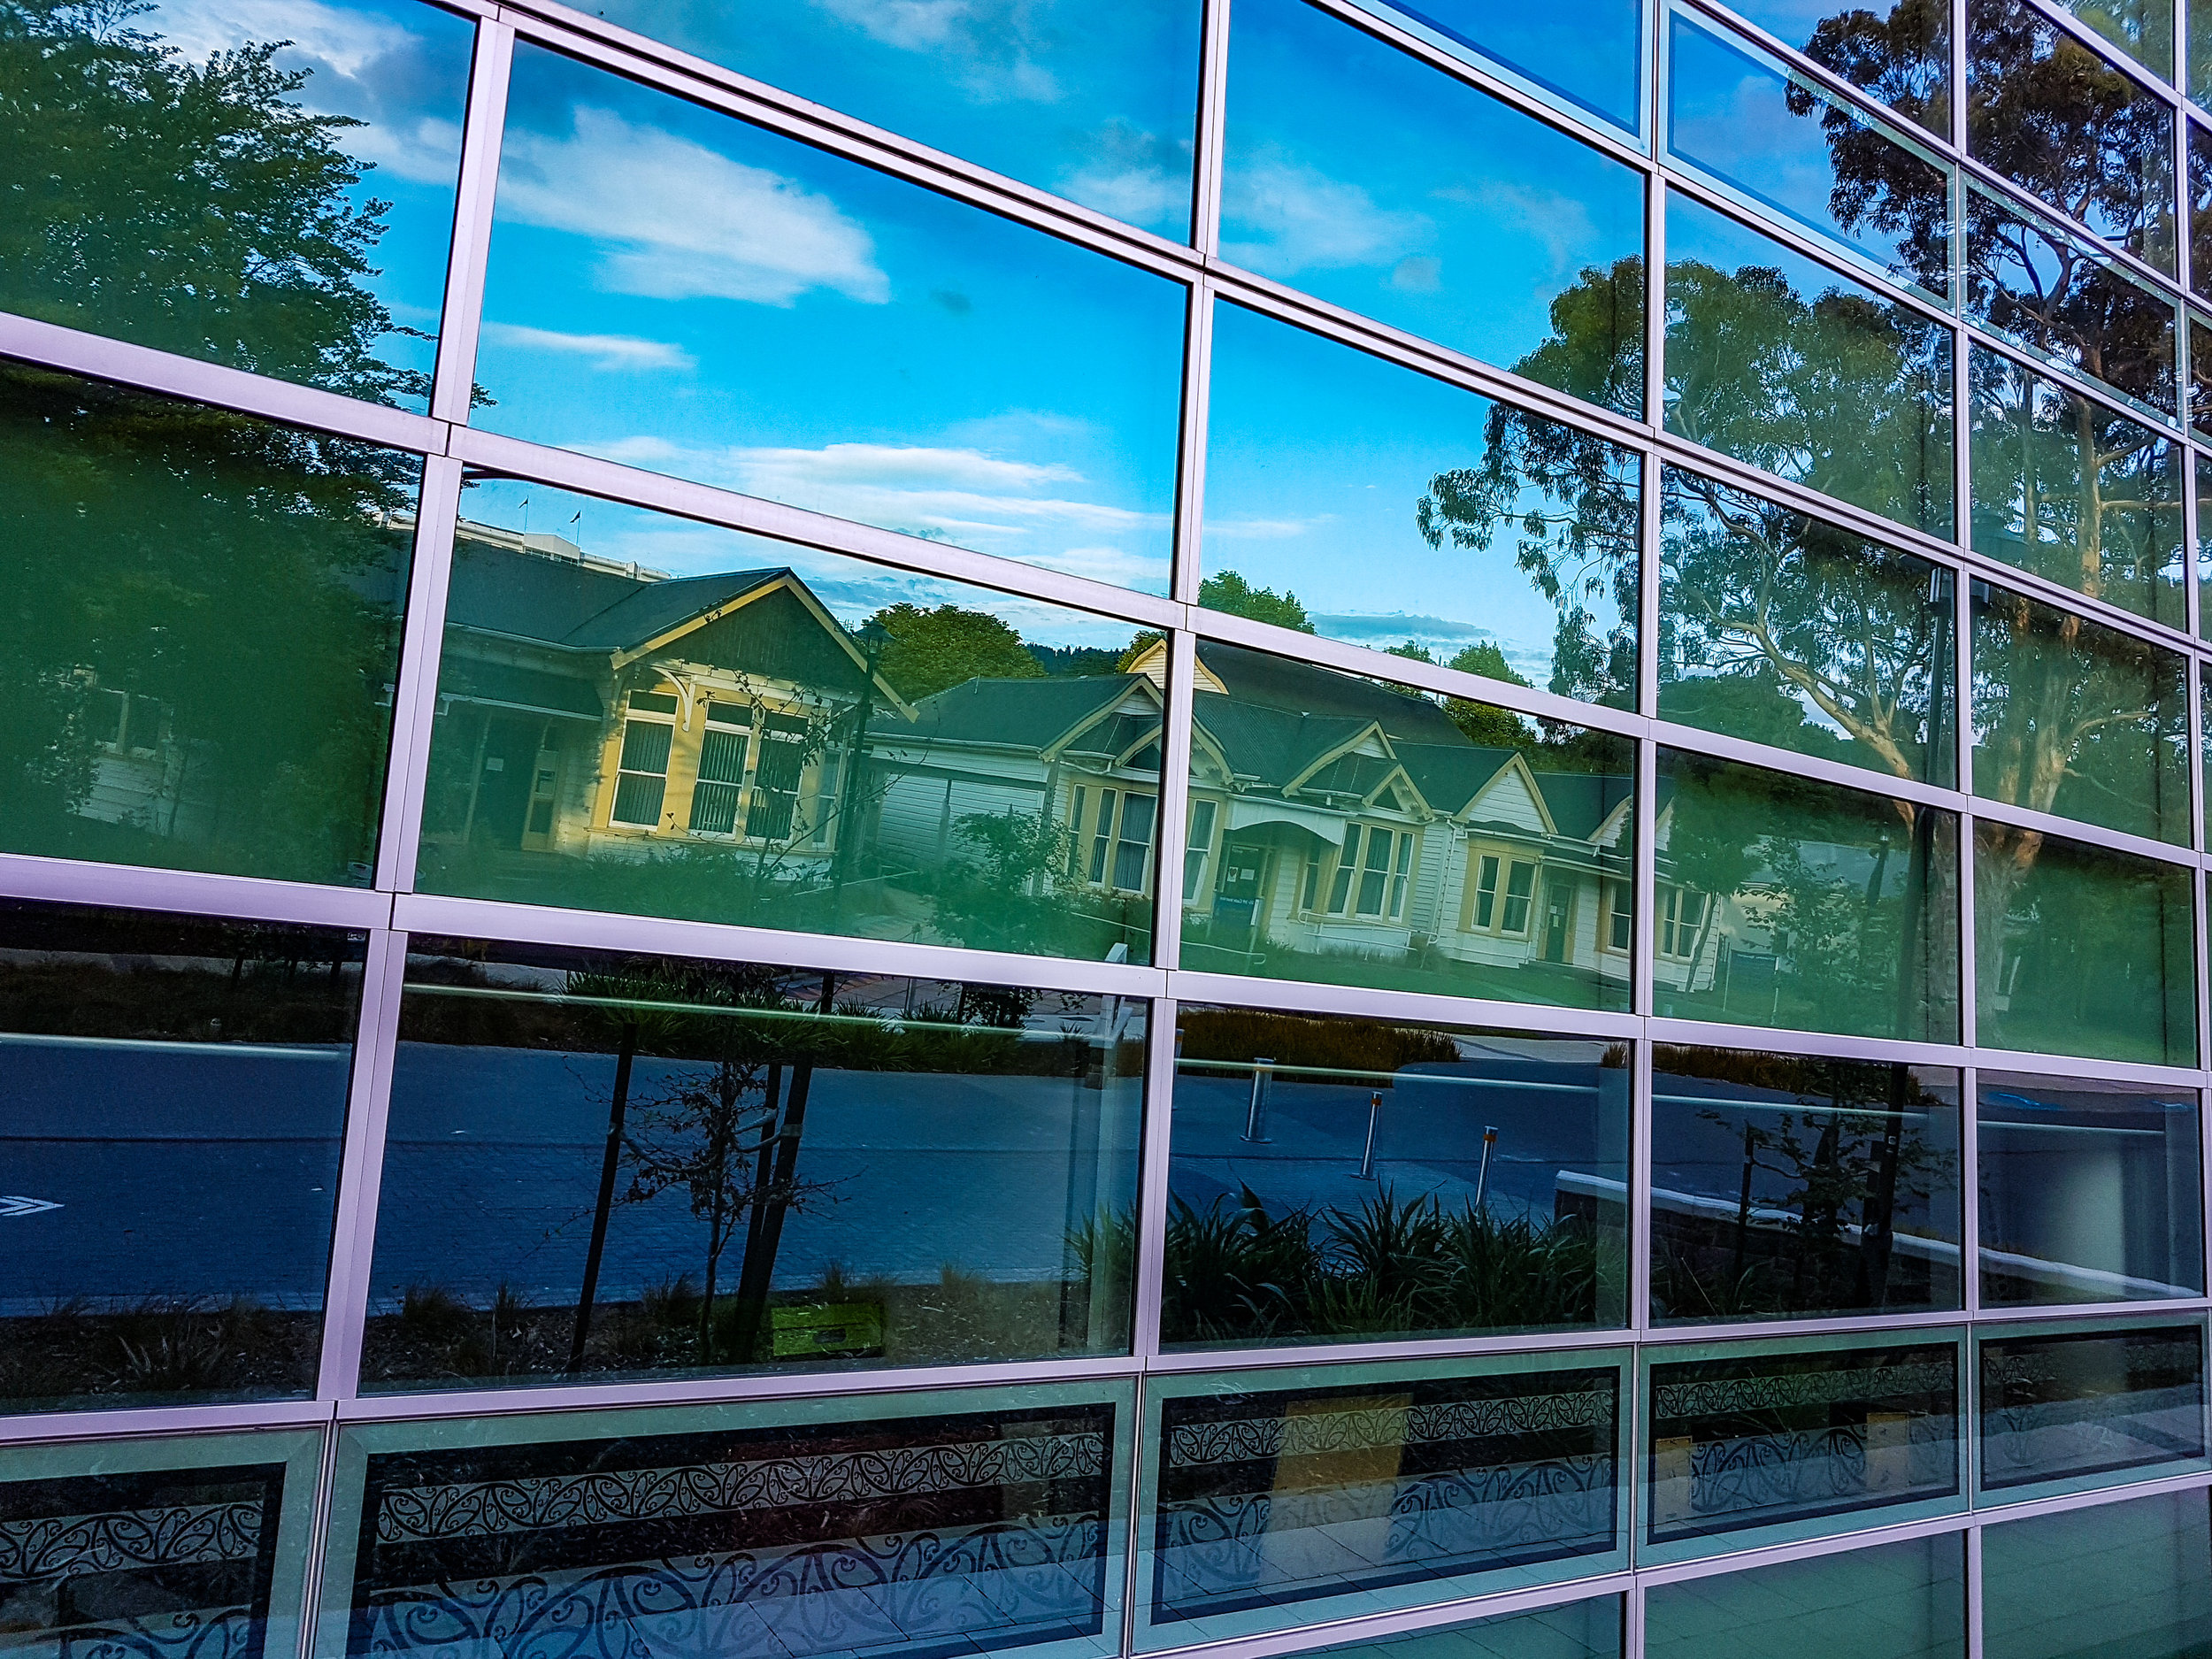 Otago University reflections in glass